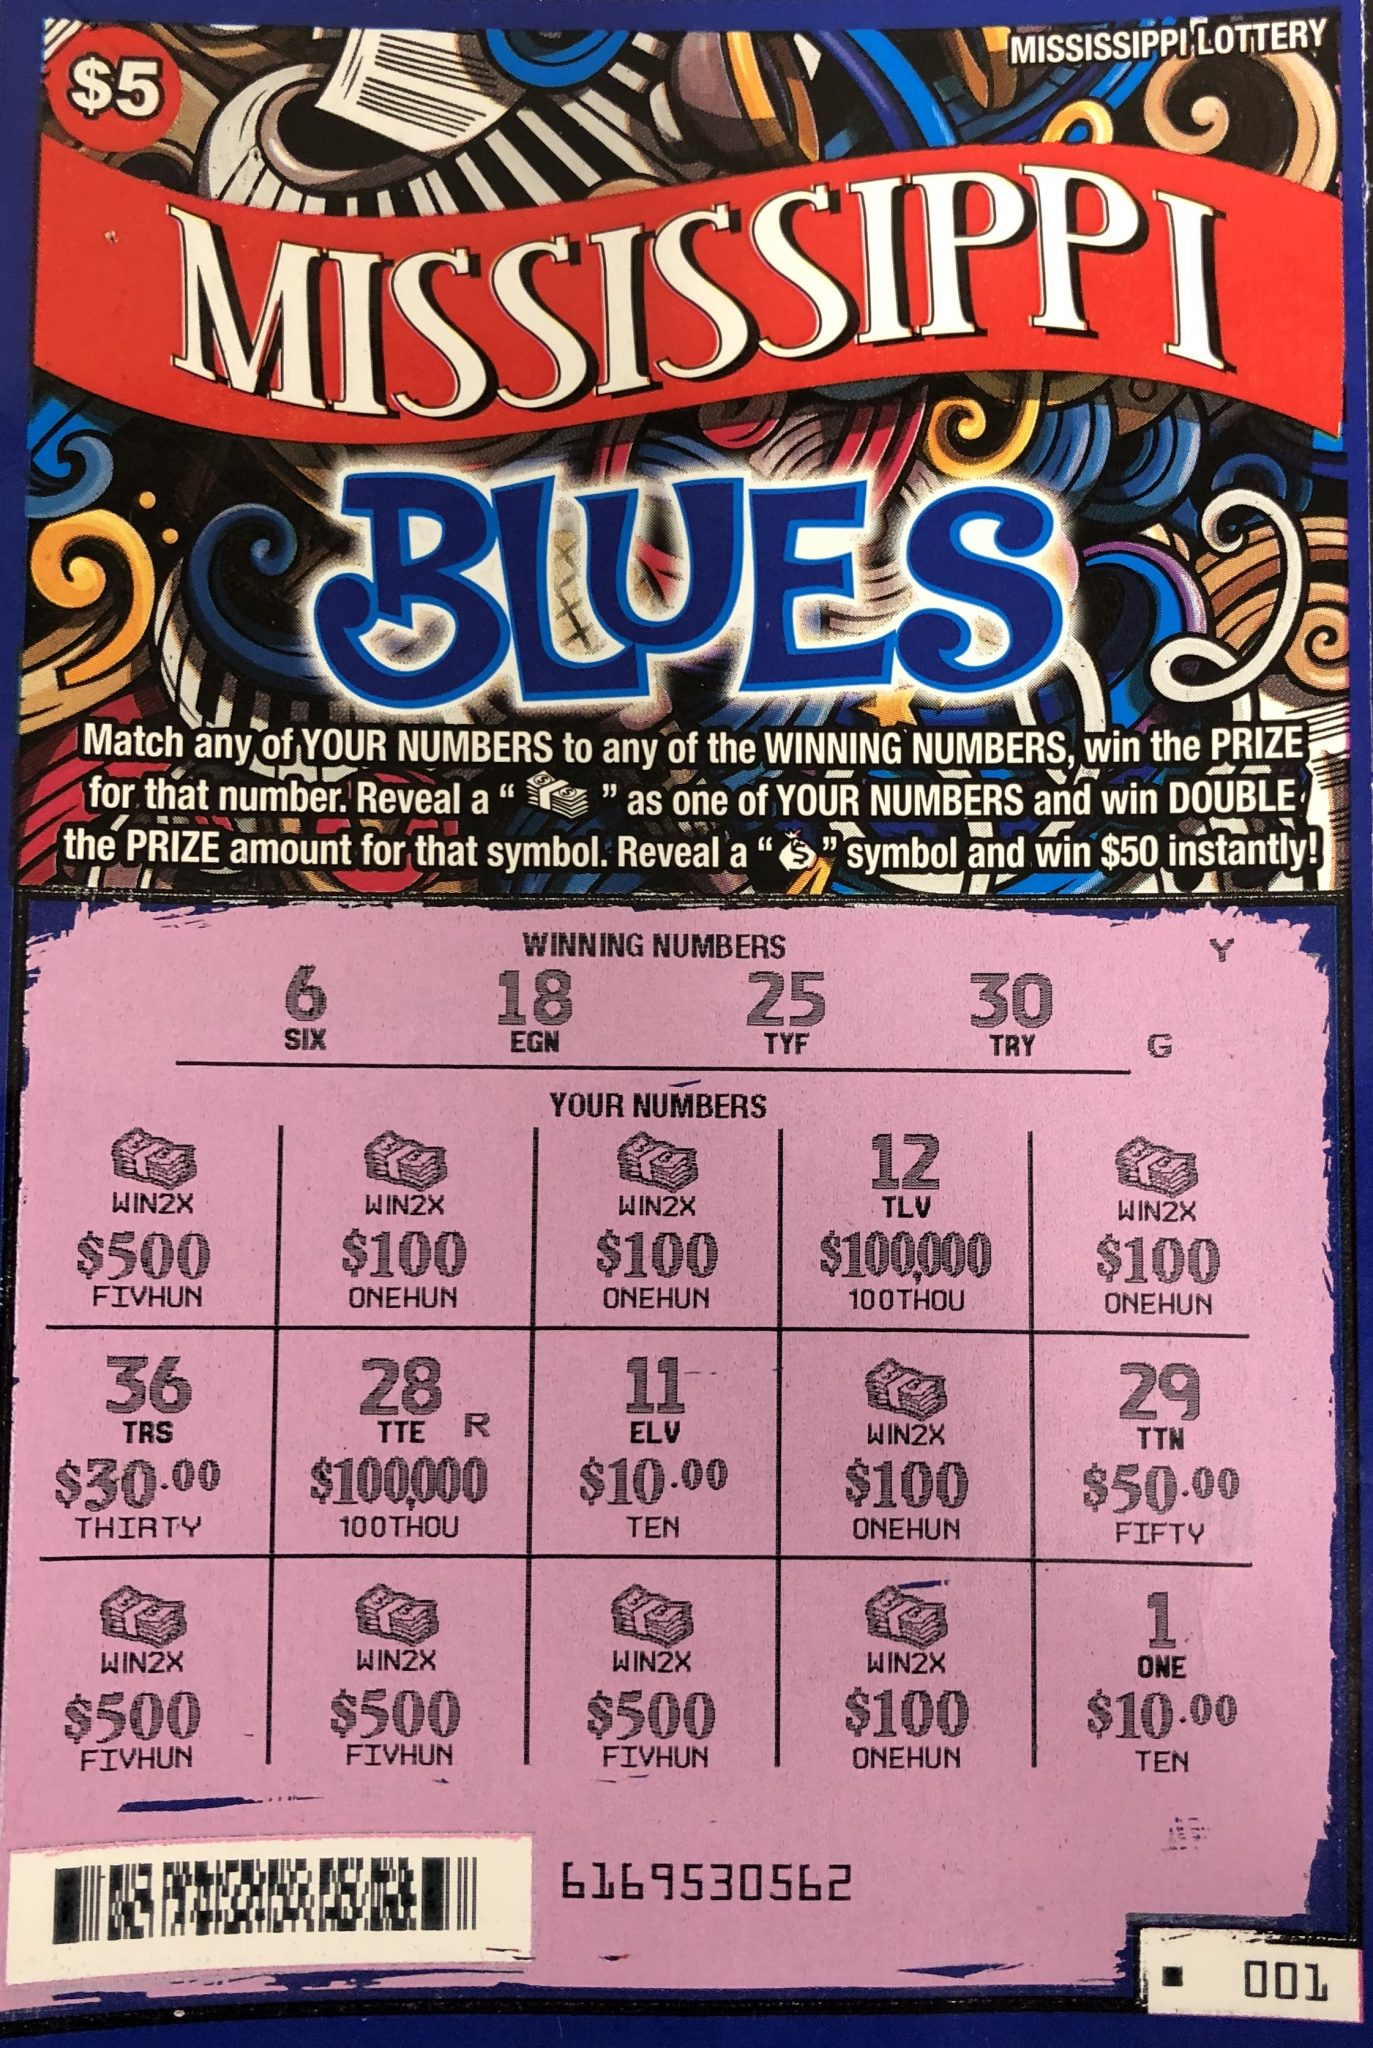 Canton Woman Wins $5K! - Mississippi Lottery